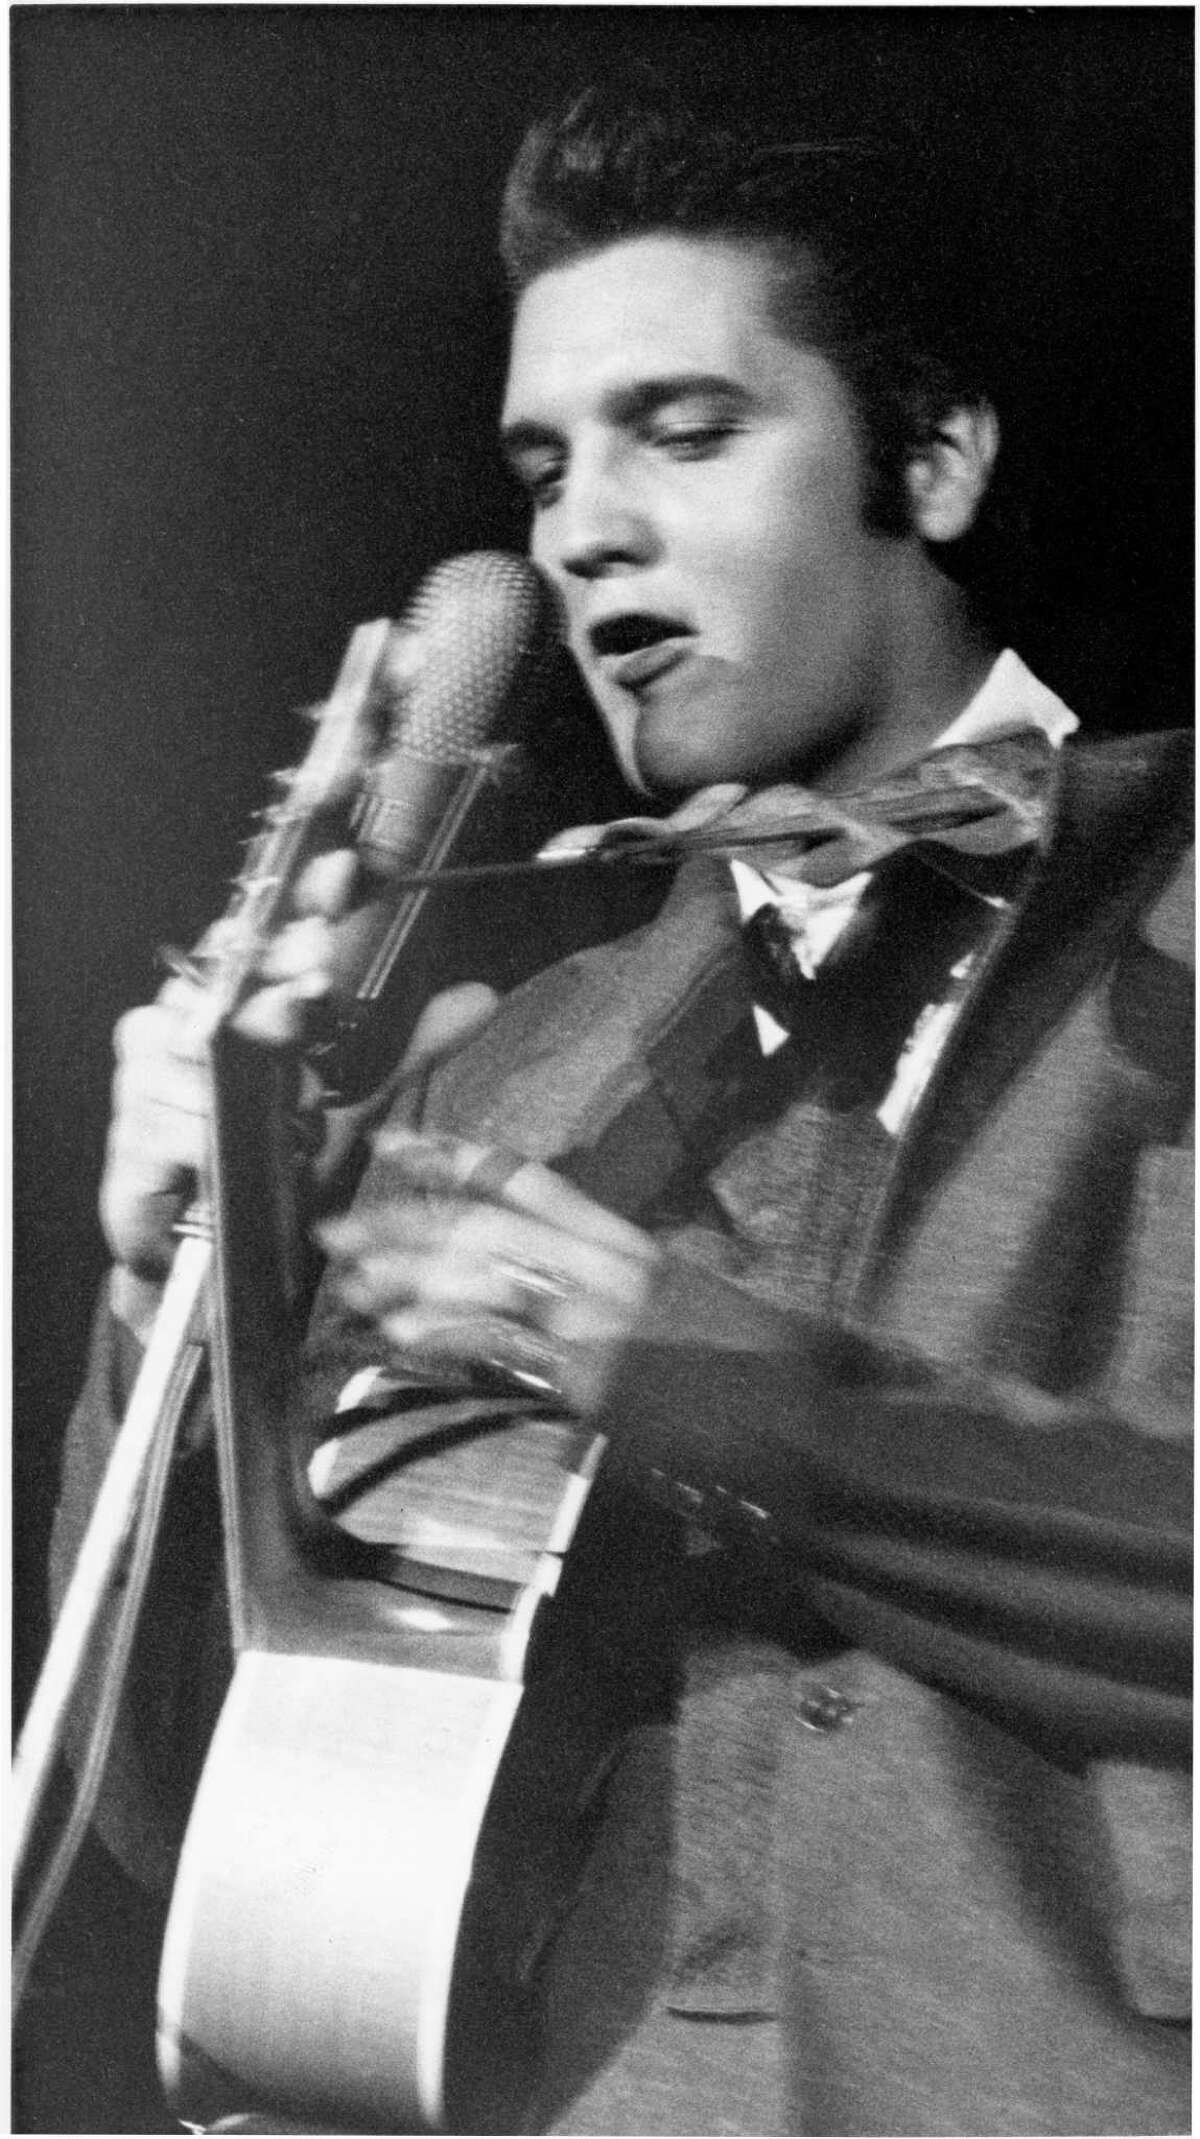 Original Elvis Back in 1956, there was one Elvis. He was dangerous and made fathers want to lock up their daughters. (It was the '50s.)